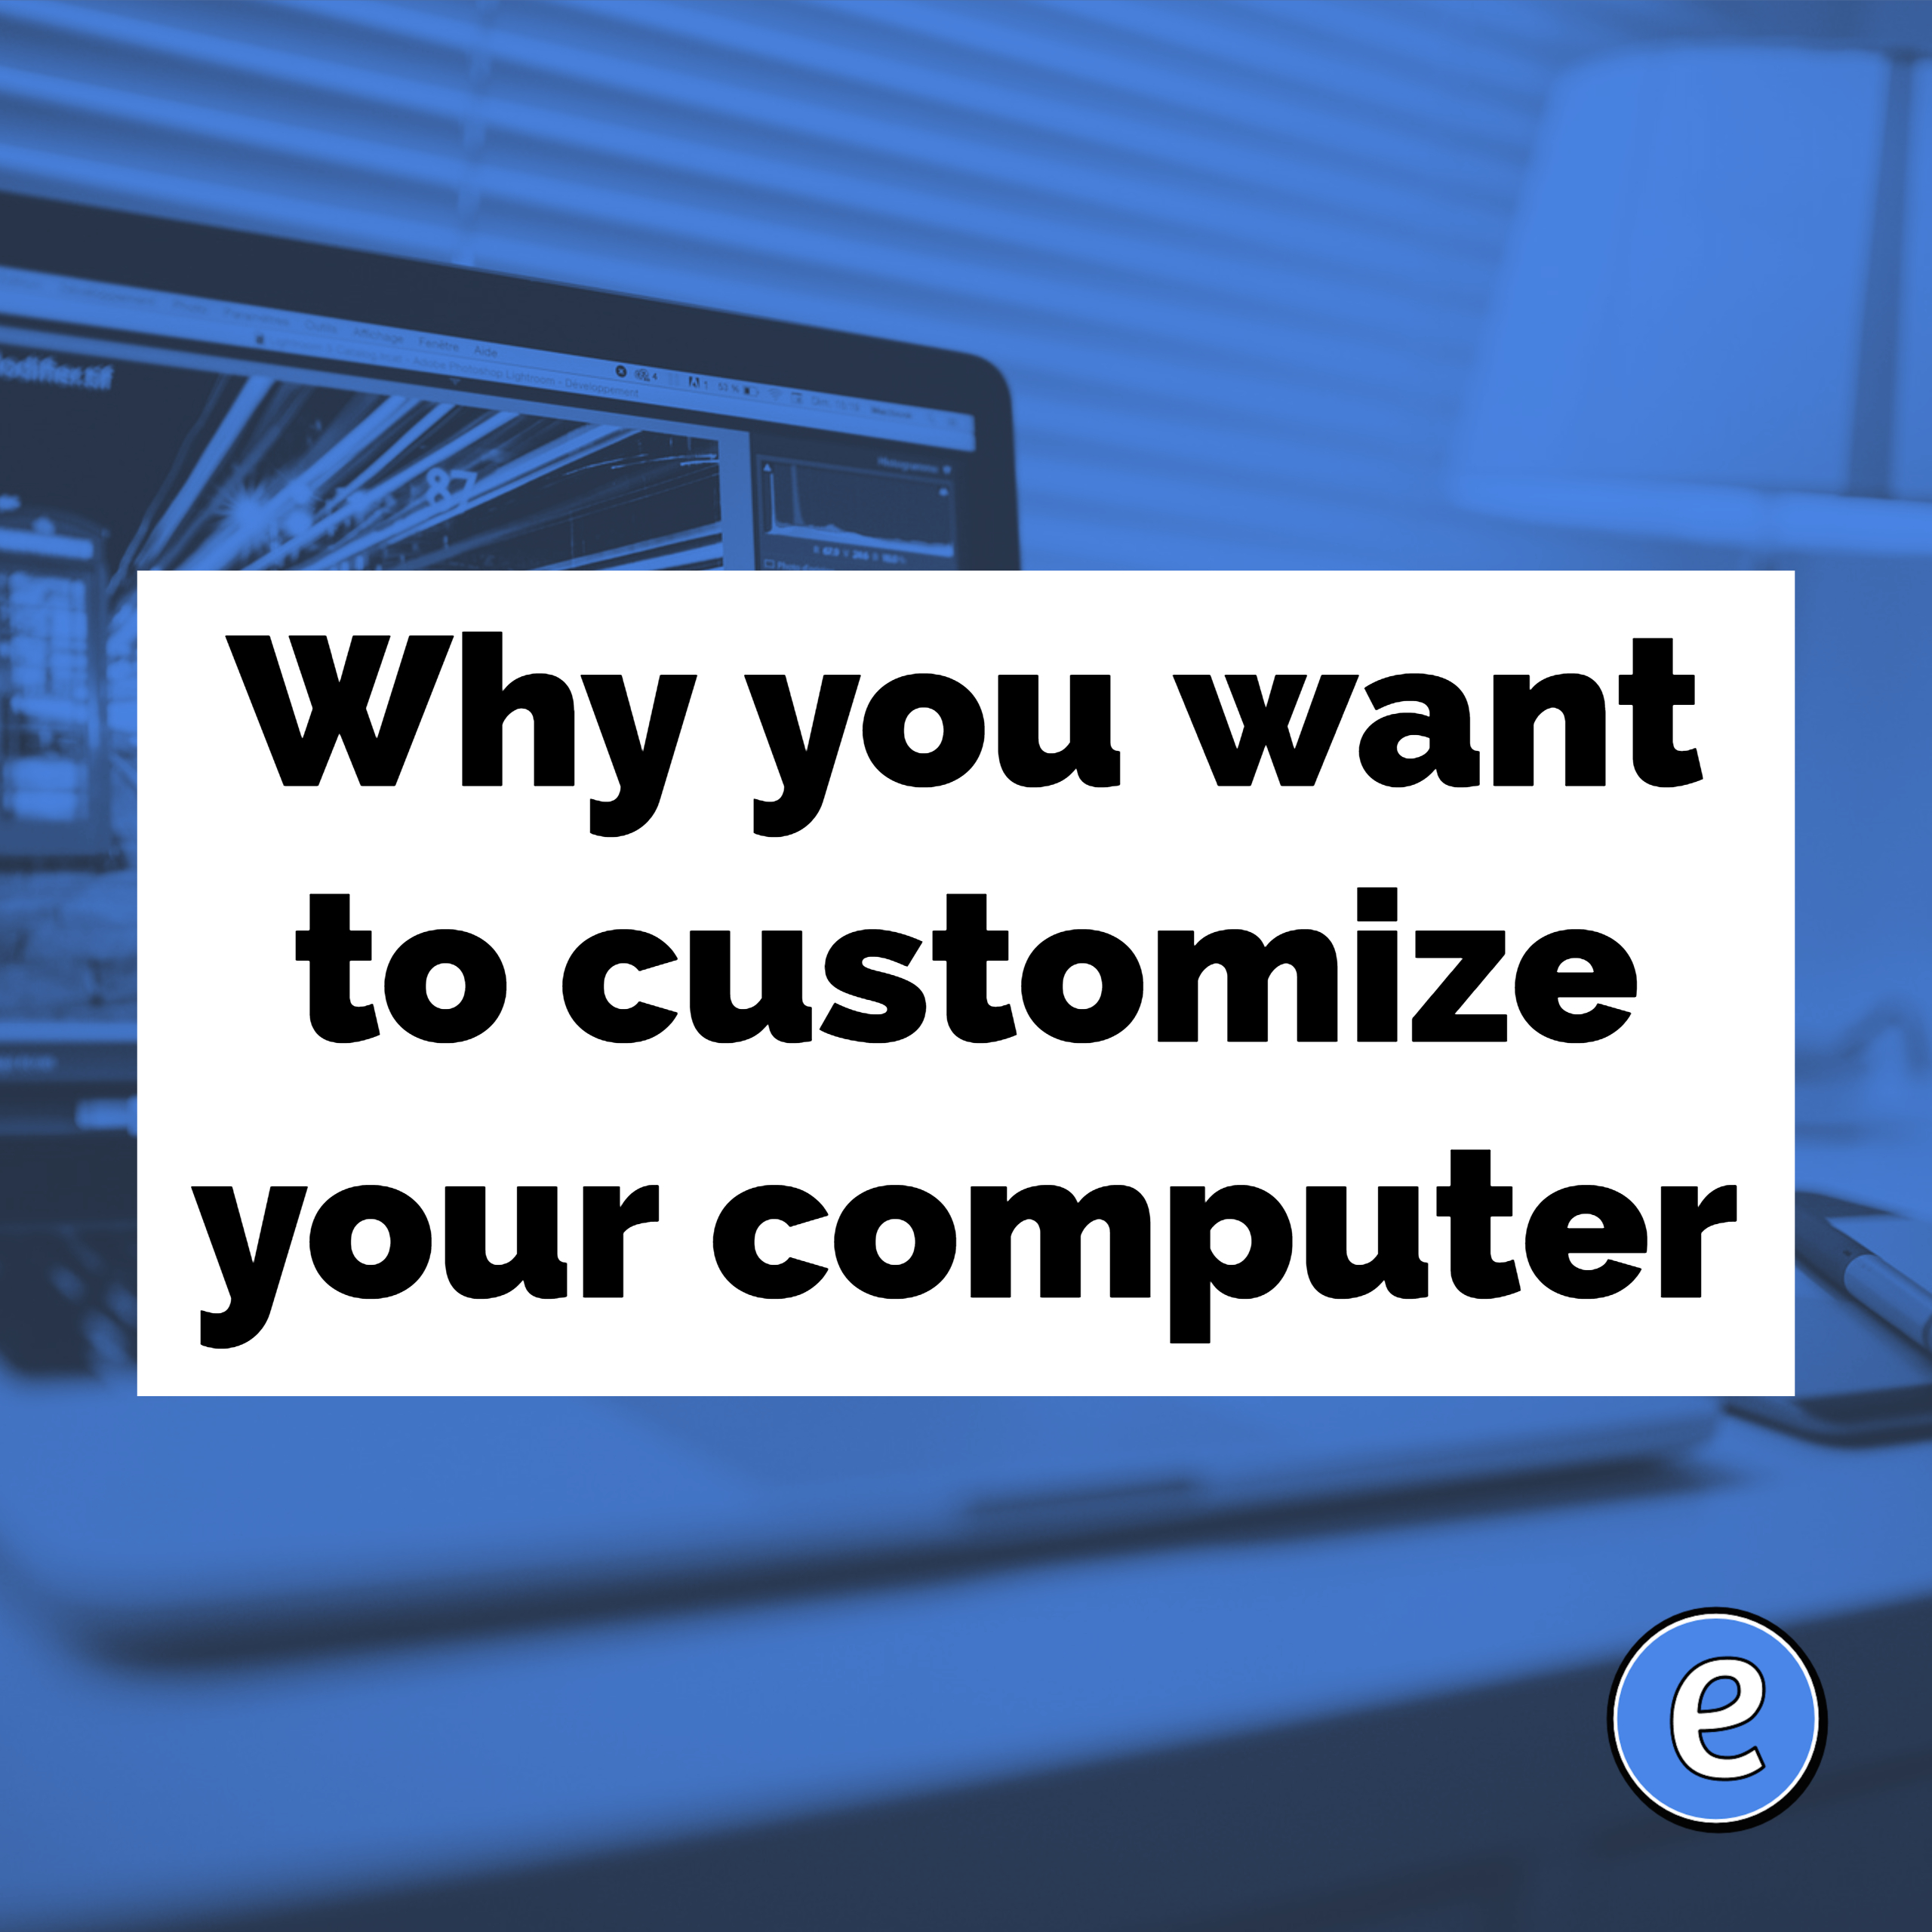 Why you want to customize your computer